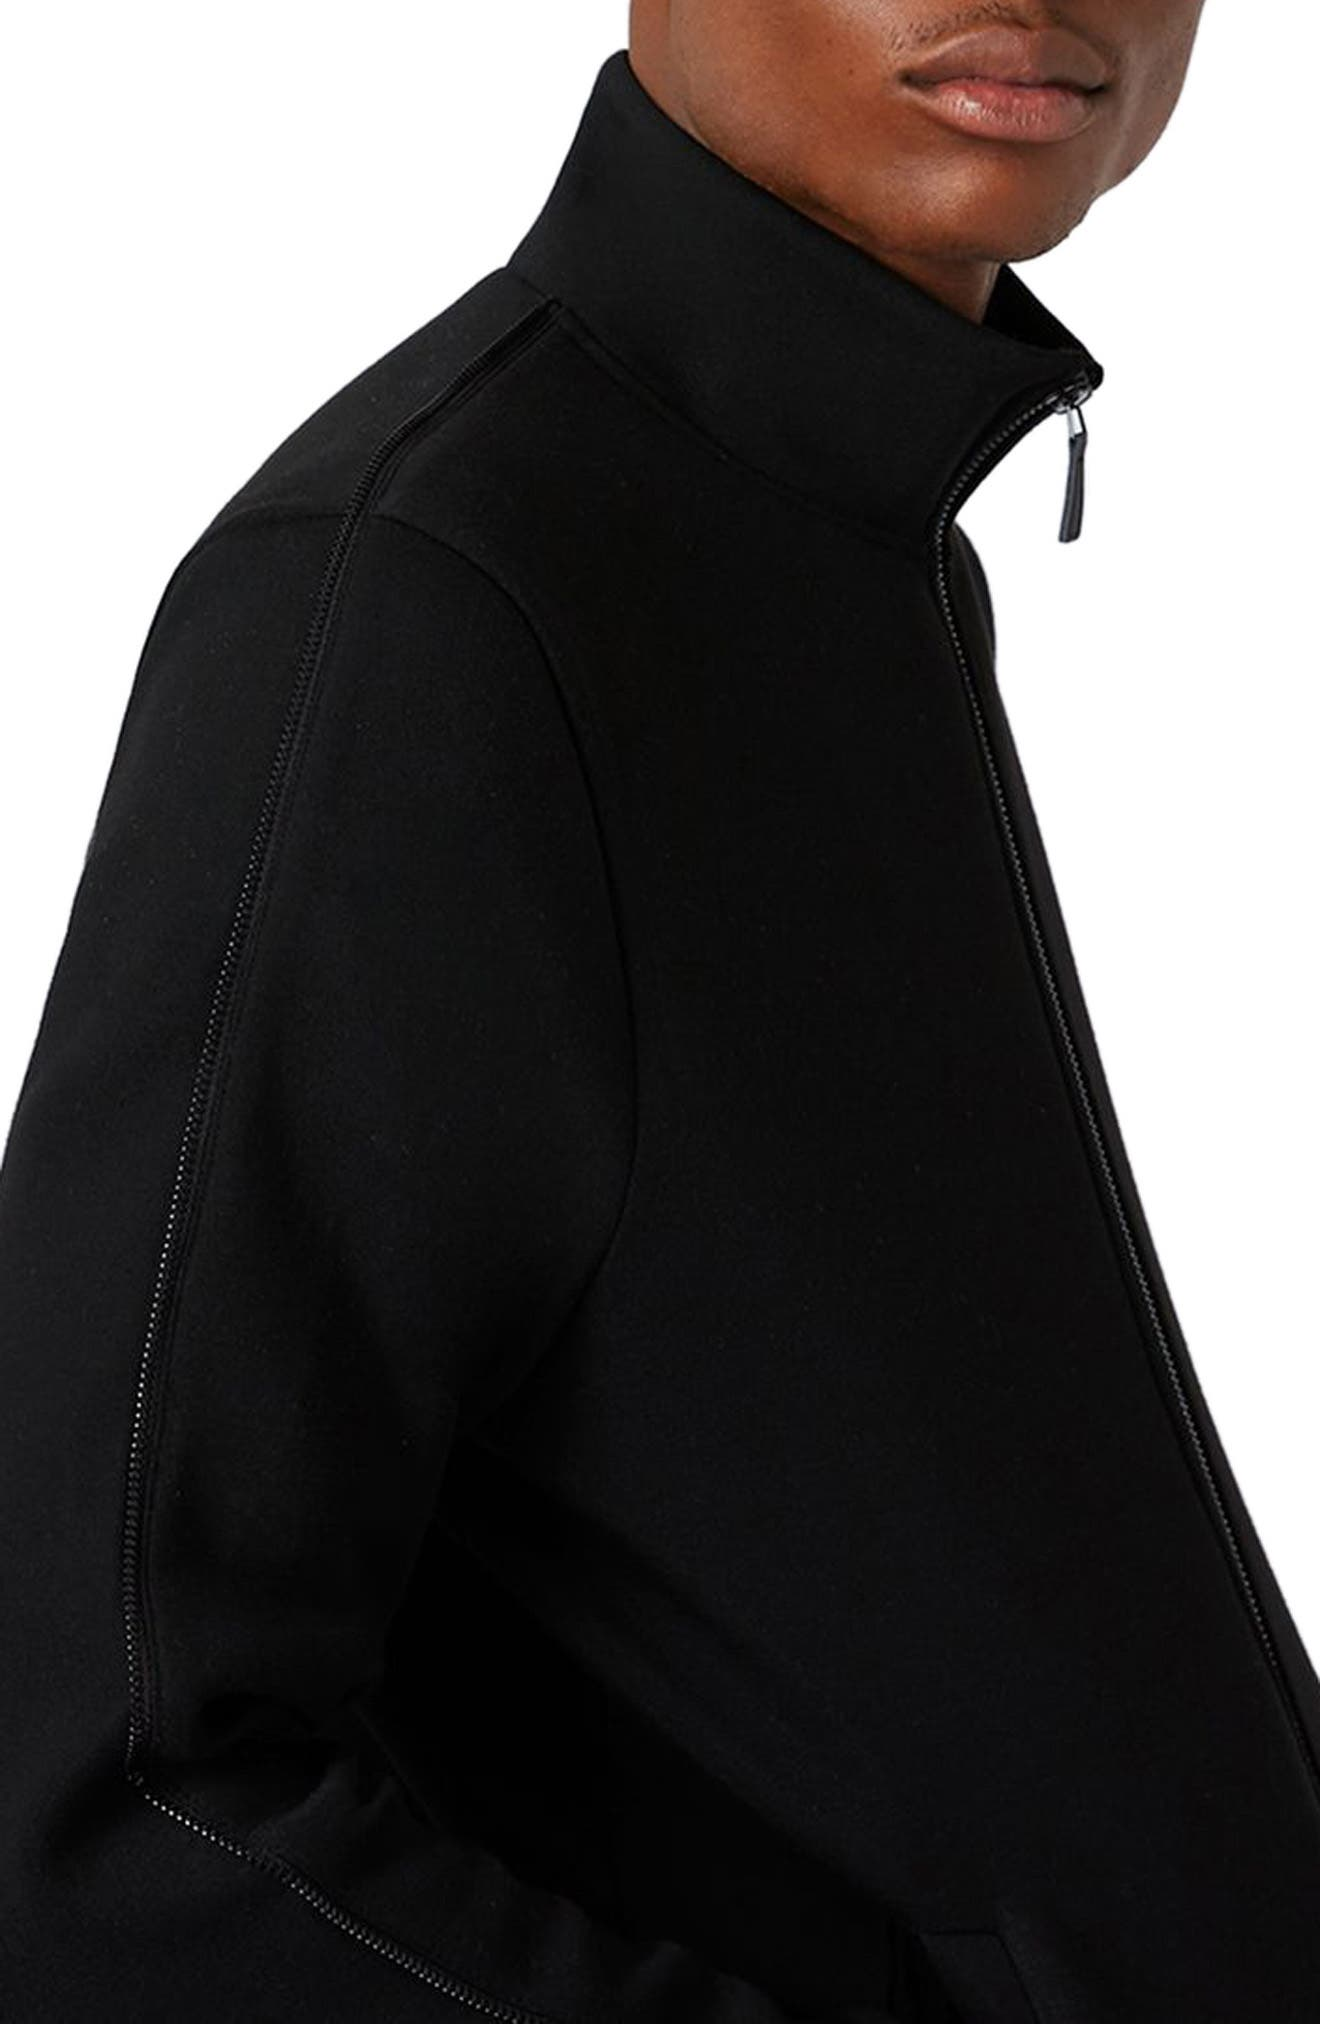 AAA Collection Zip Track Jacket,                             Alternate thumbnail 3, color,                             Black